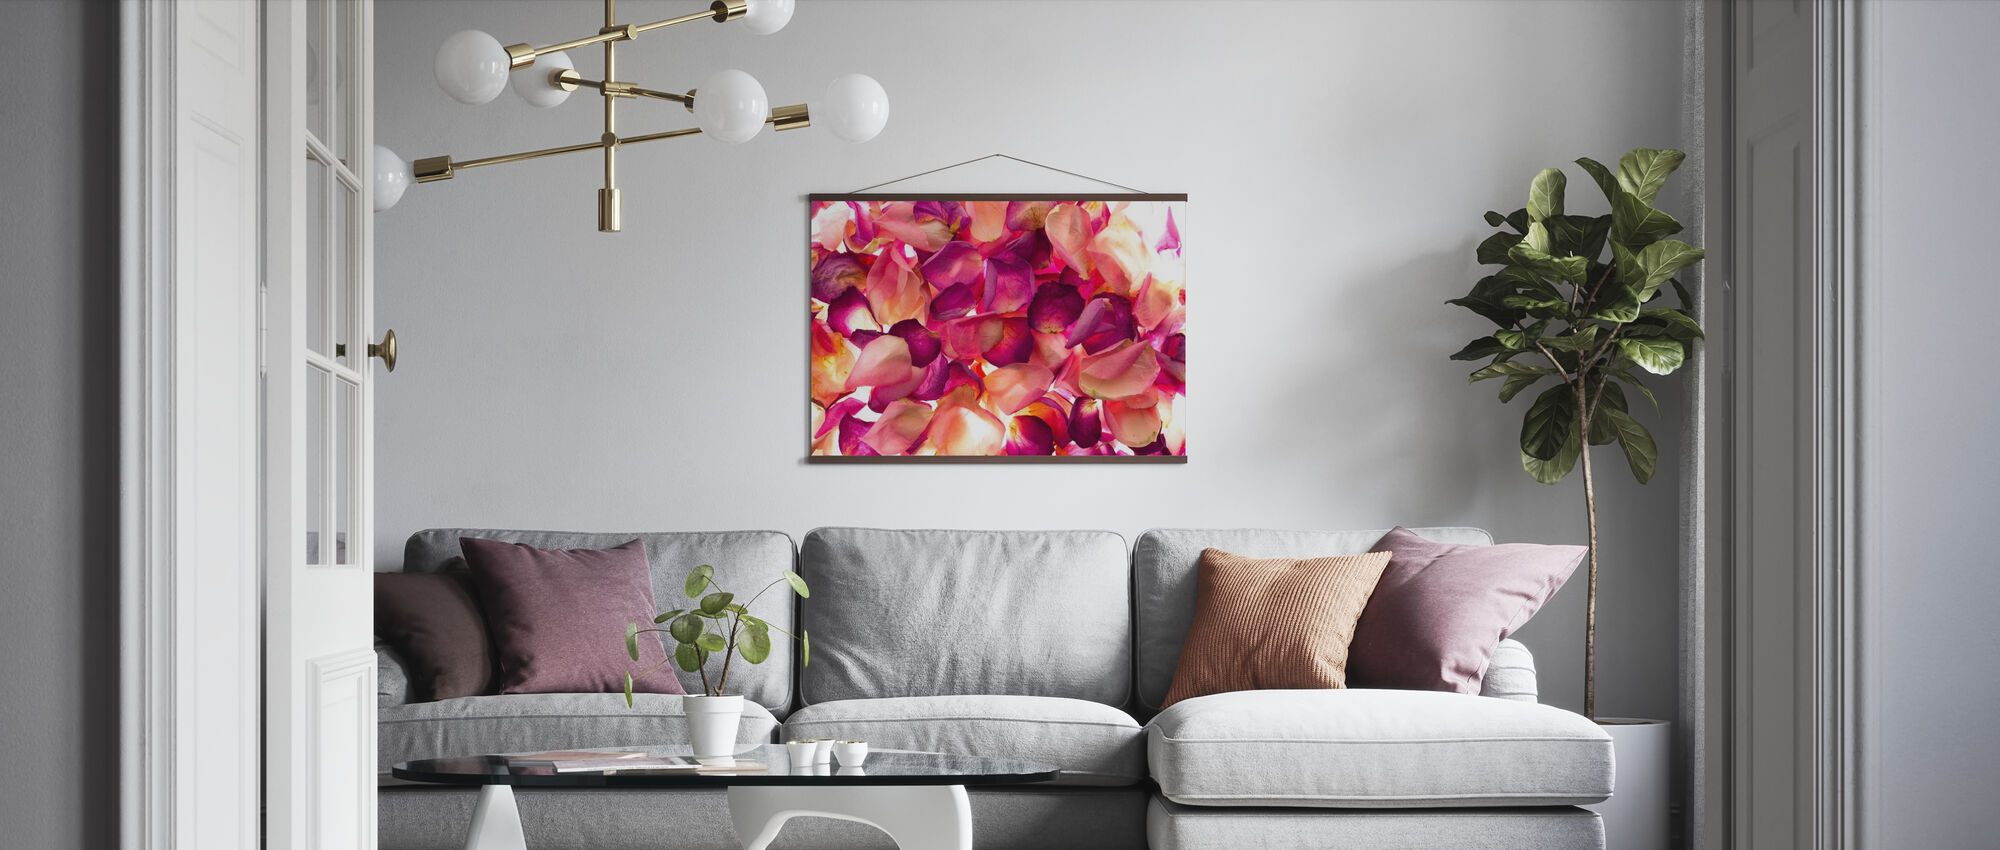 Bed of Rose Petals - Poster - Living Room